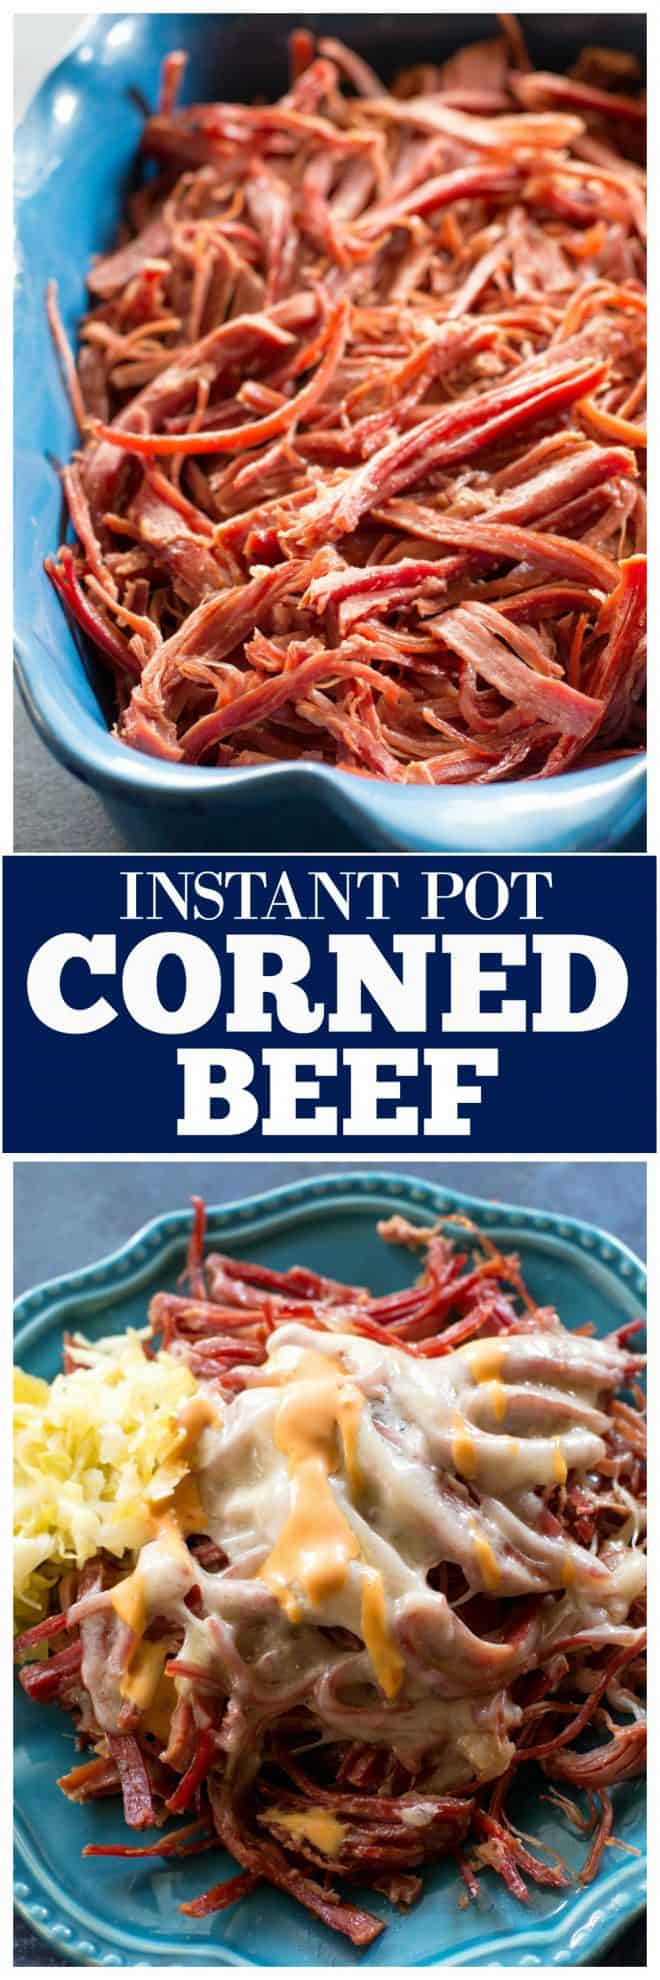 Instant Pot Corned Beef with sauerkraut